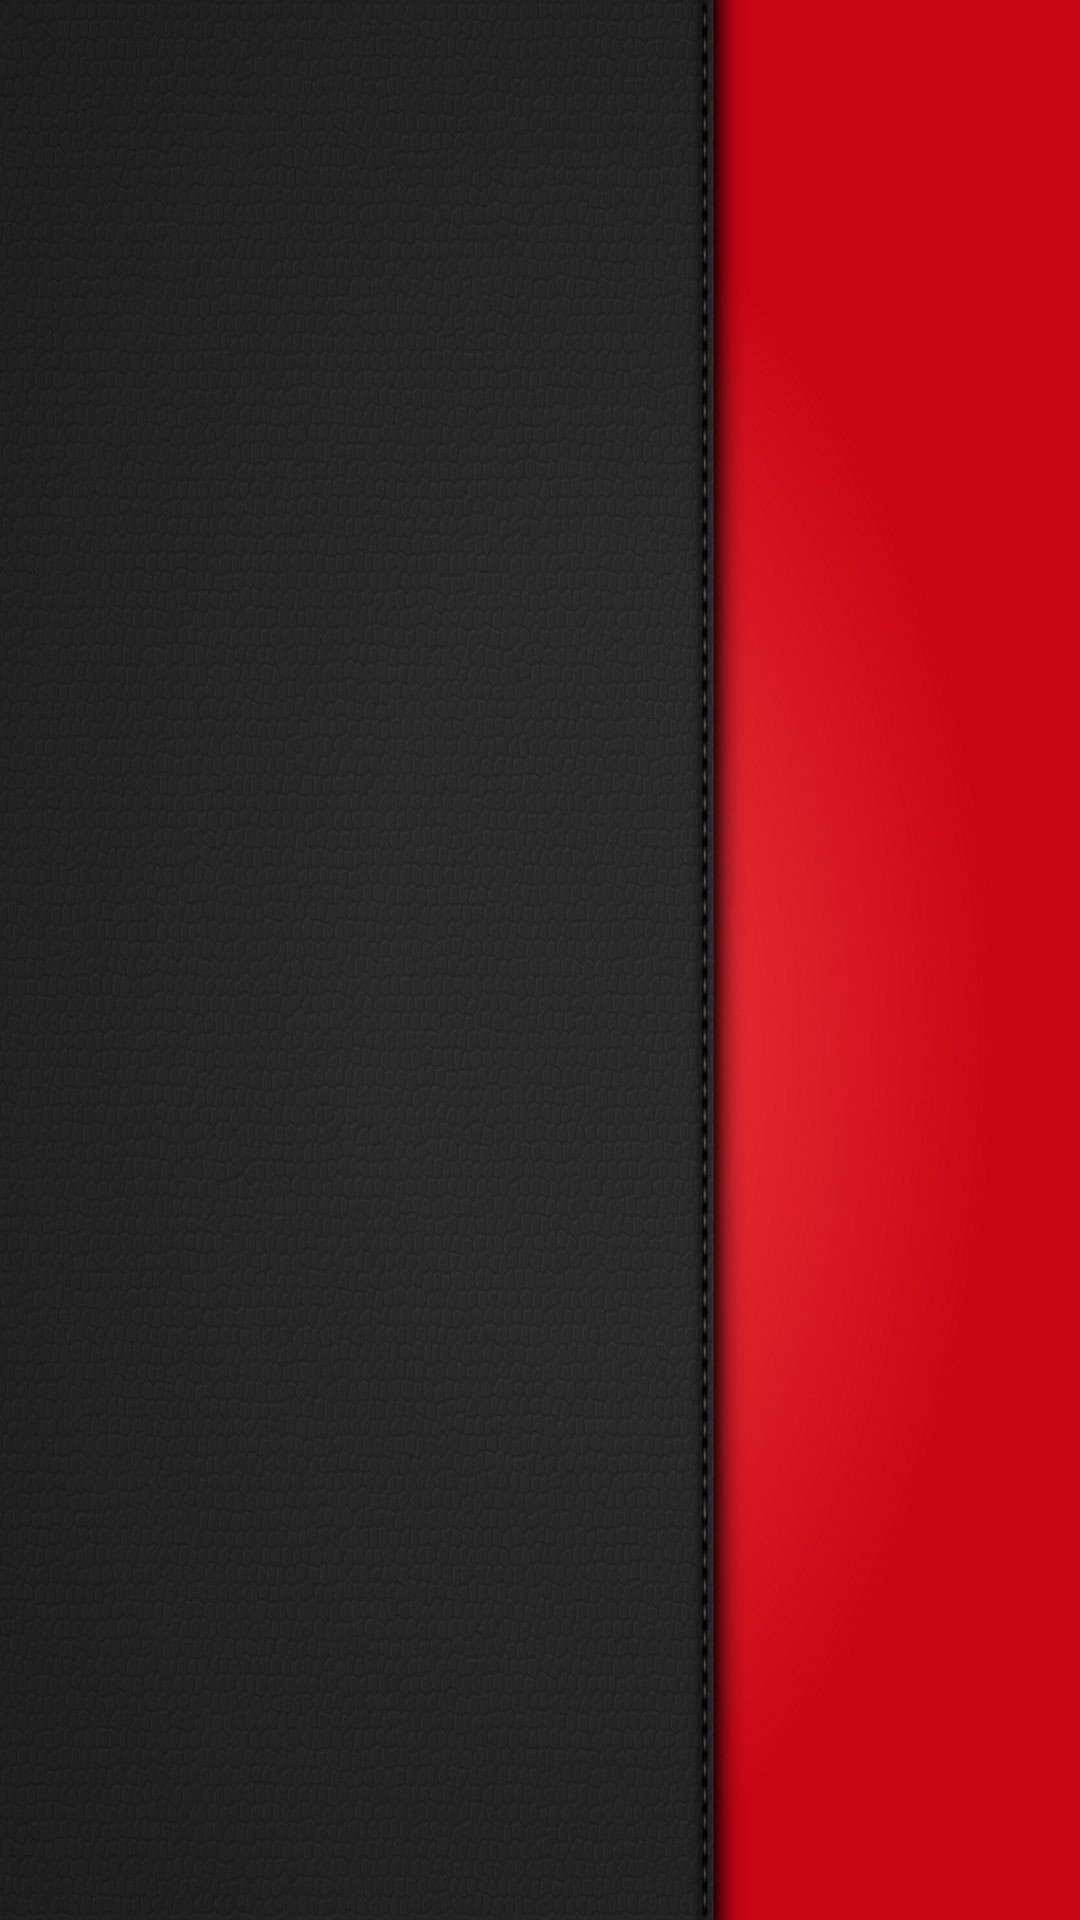 Black Red iPhone 6 Plus Wallpapers   abstarct black iPhone 6 Plus 1080x1920